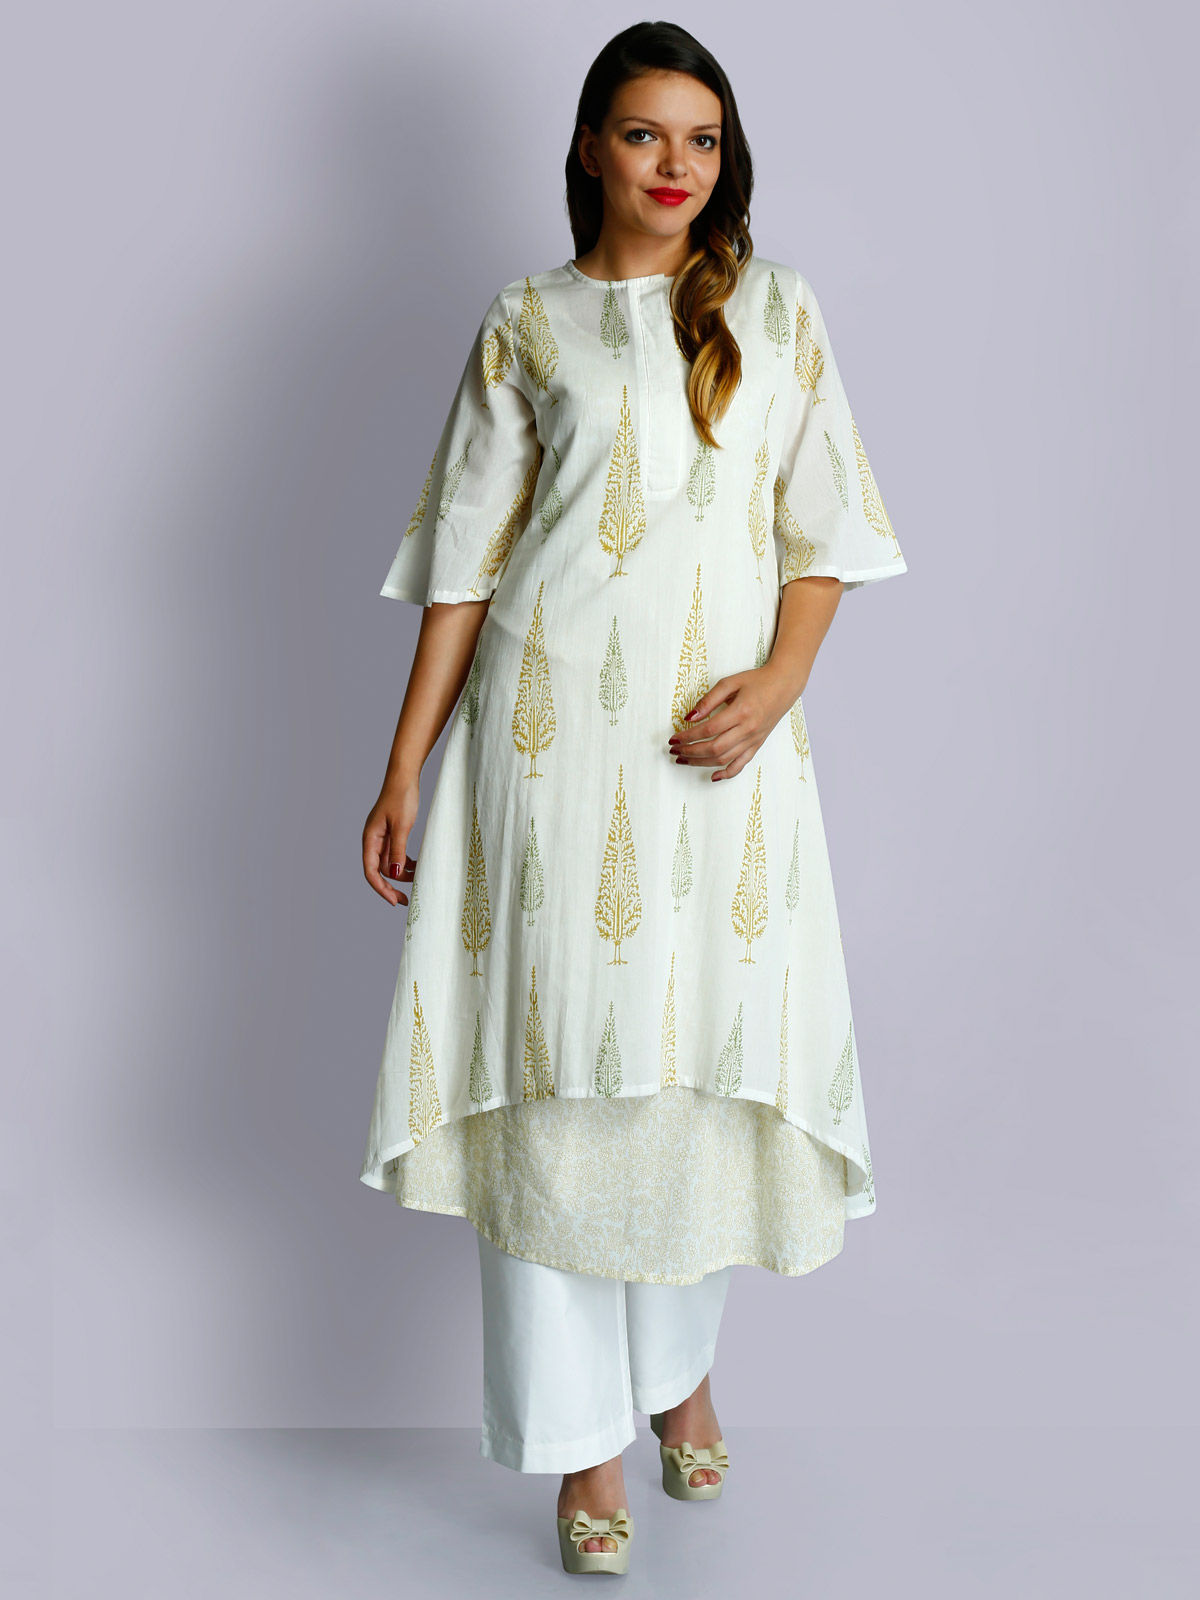 Off-white cotton voile round neck golden hand block printed layered tunic